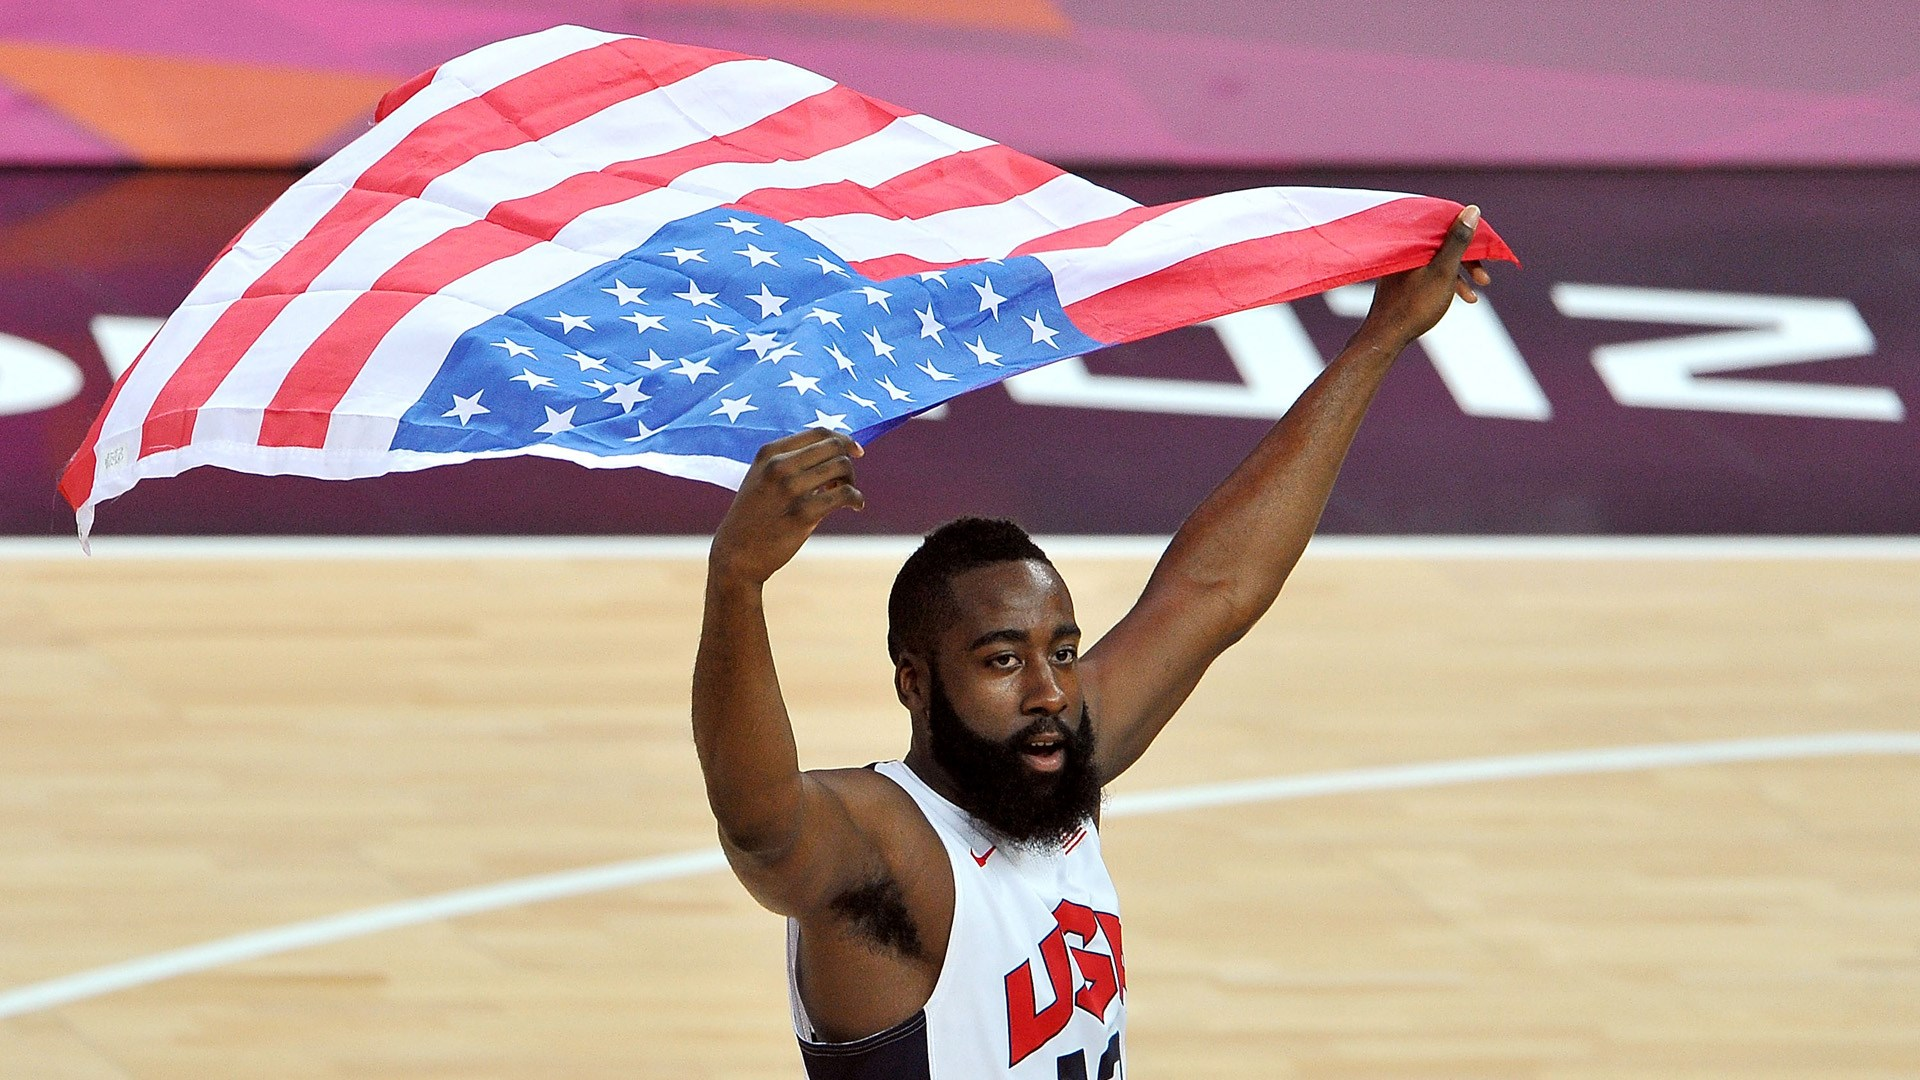 james-harden-beautiful-desktop-wallpaper-wp3407551